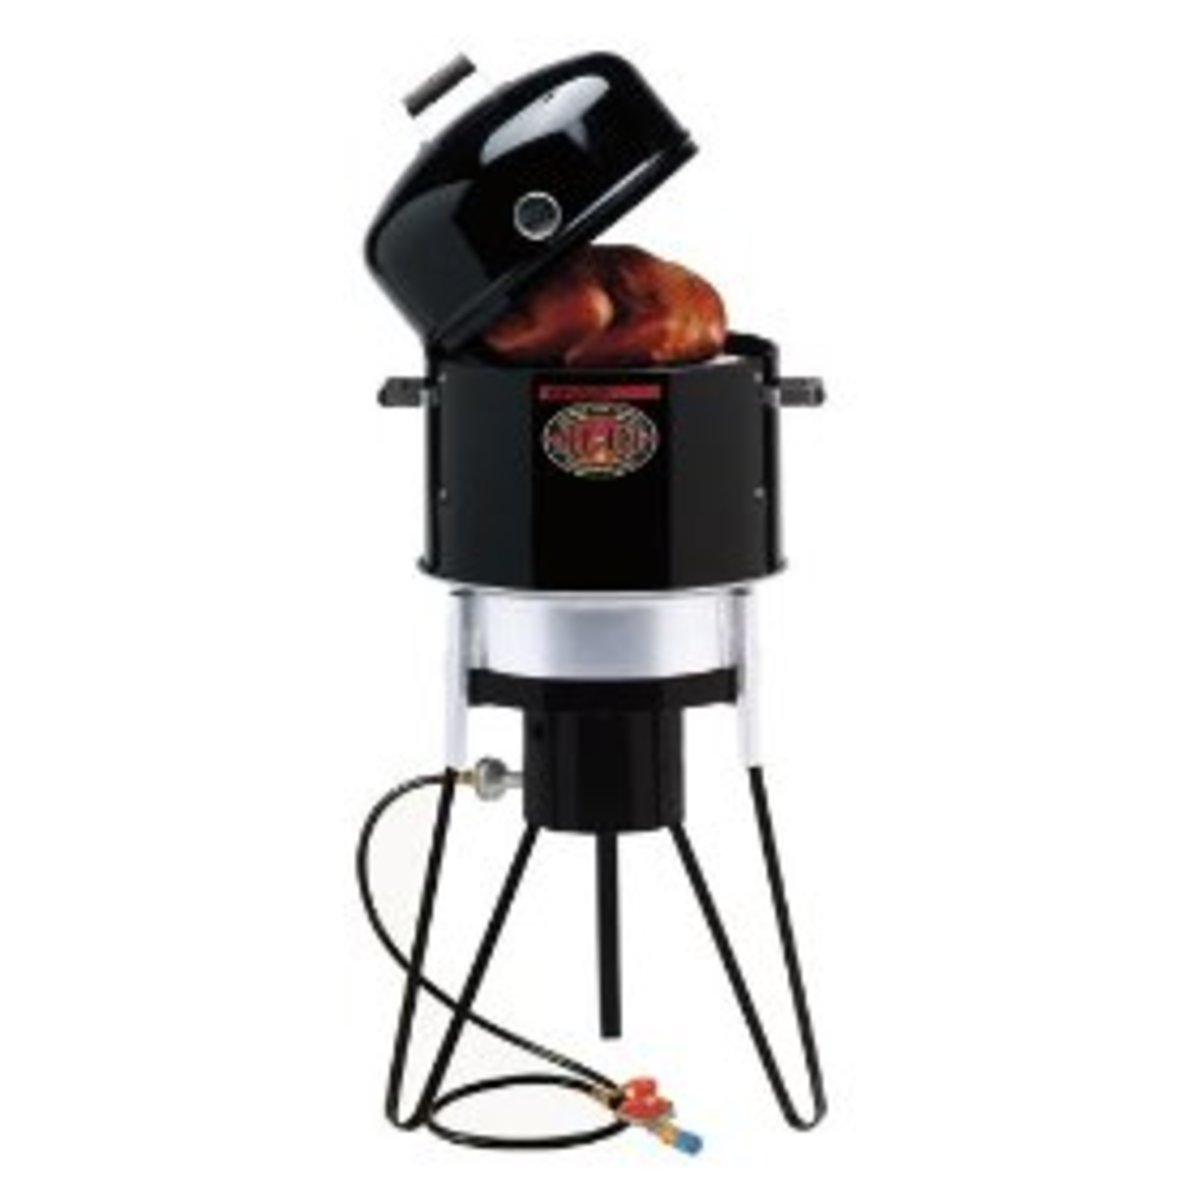 Brinkmann, All-In-One Outdoor Cooker.